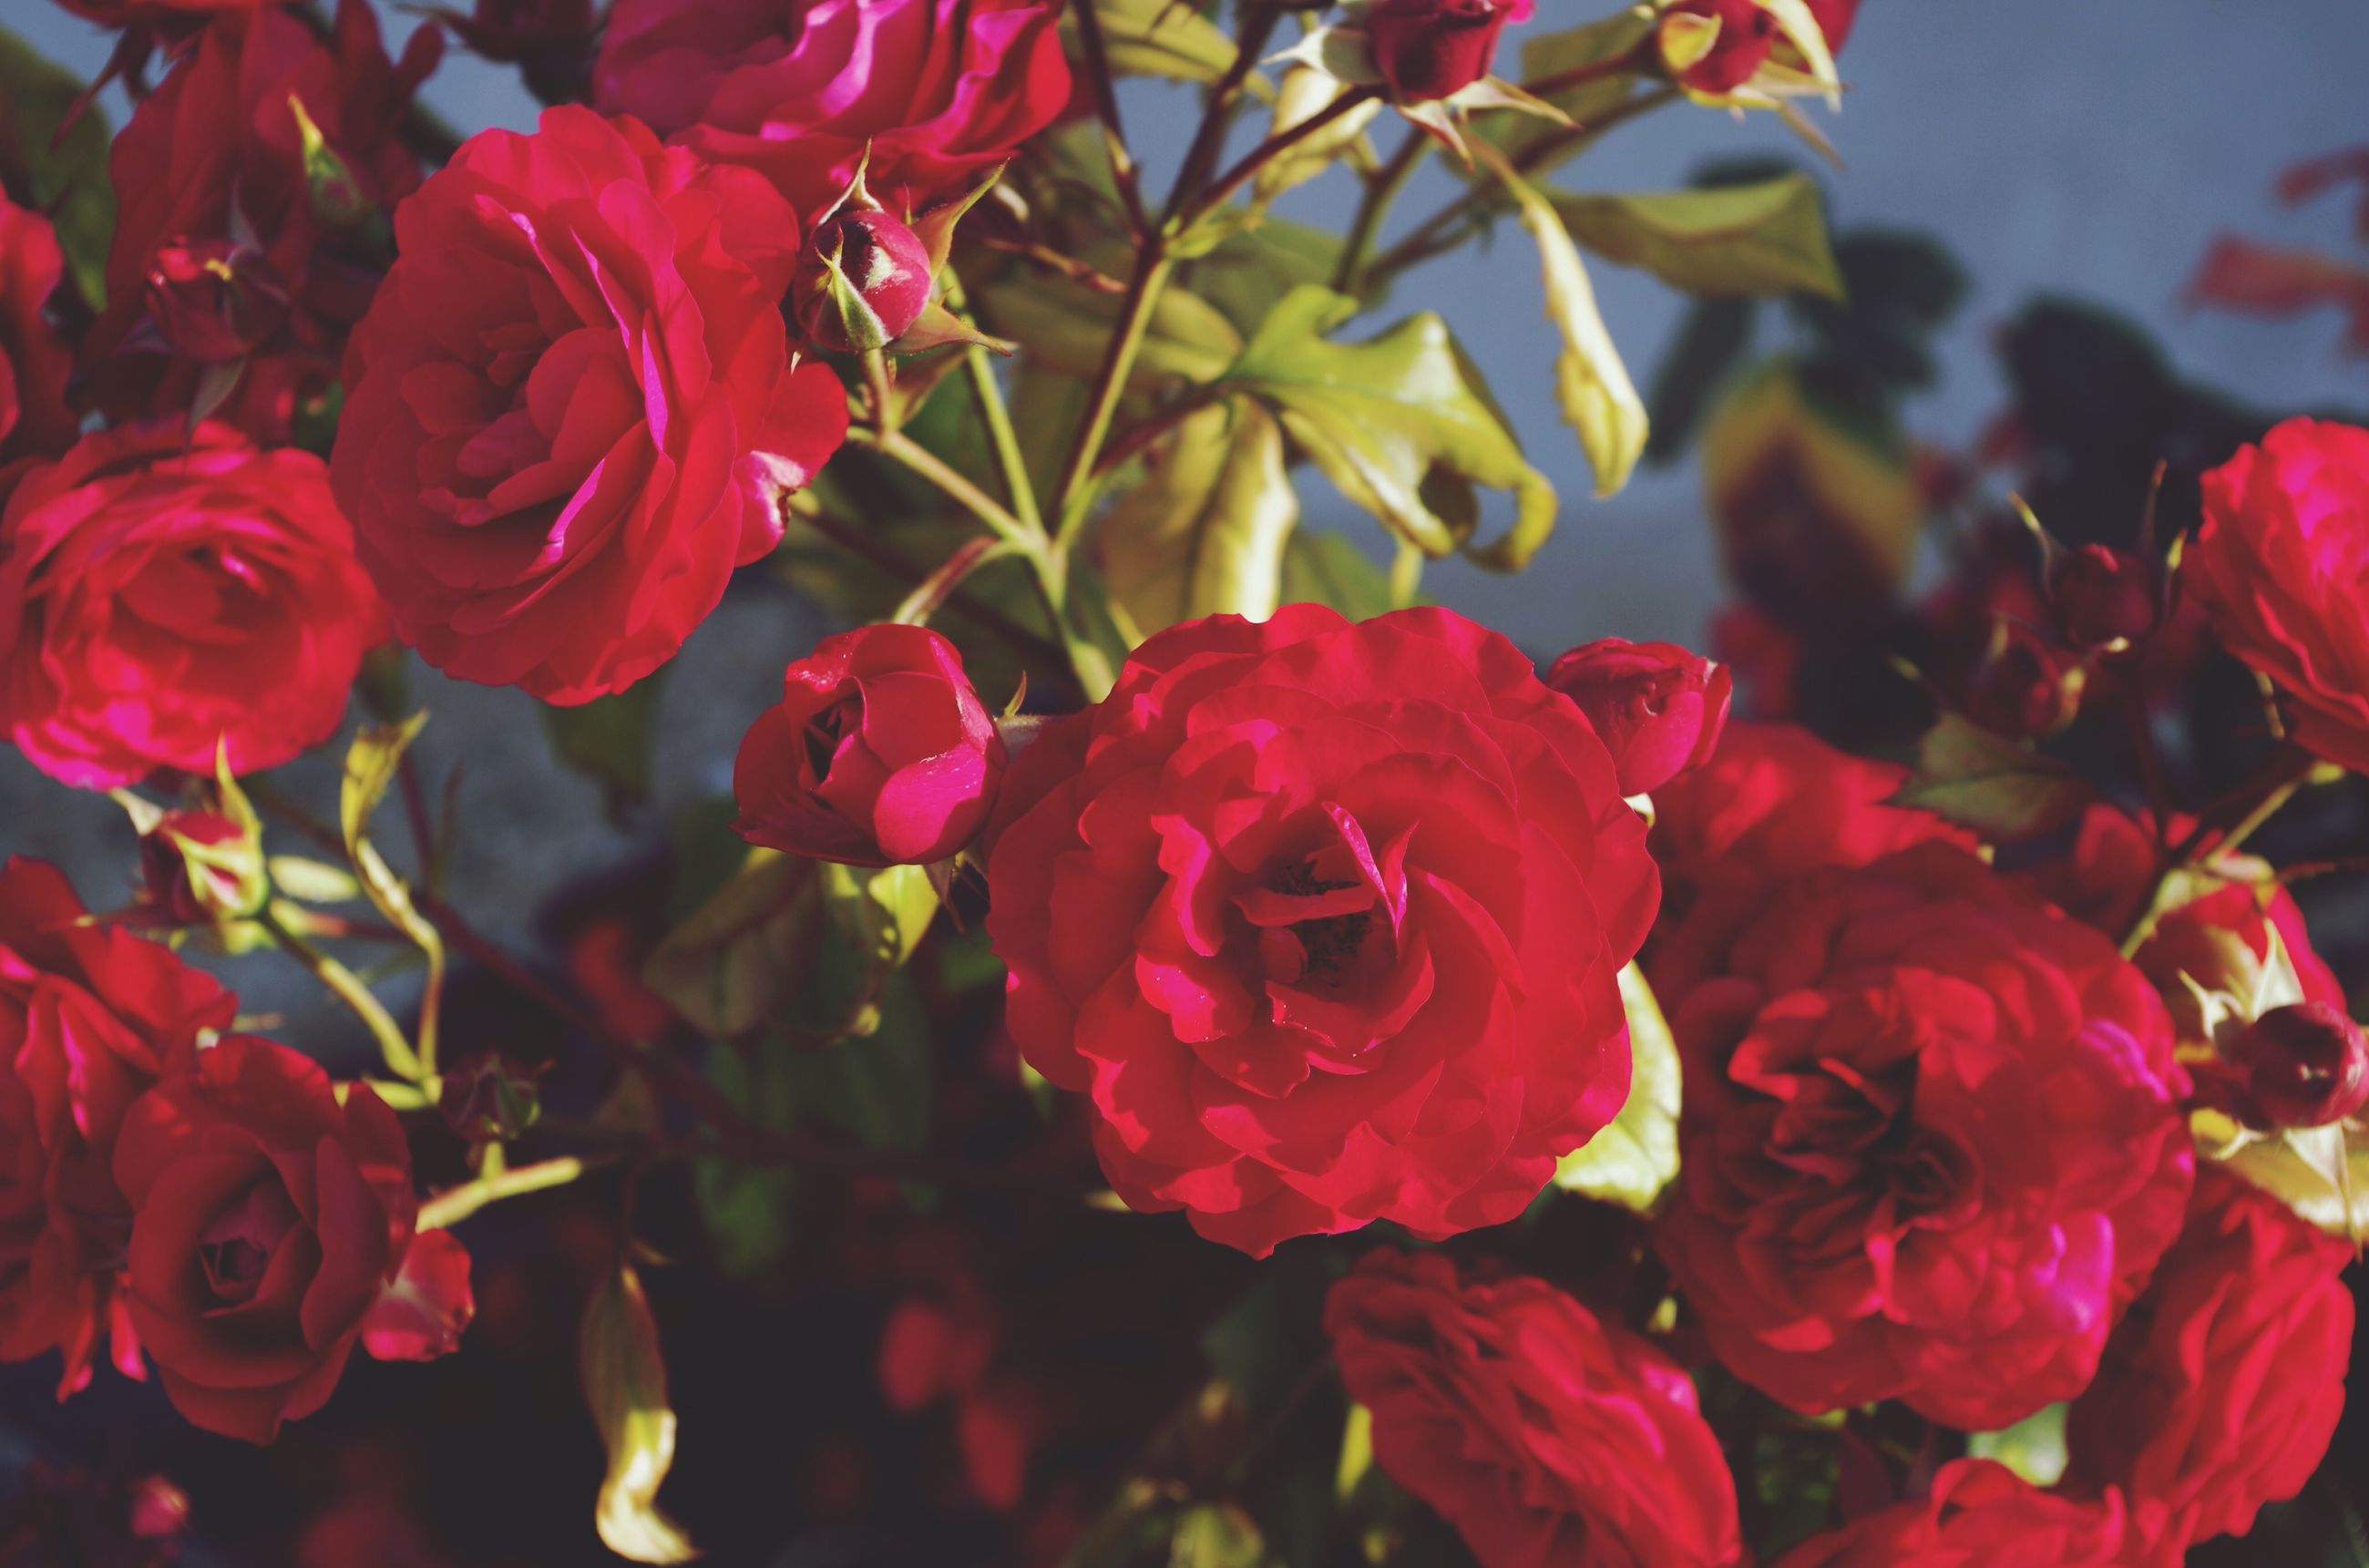 flower, petal, freshness, rose - flower, fragility, flower head, beauty in nature, red, growth, blooming, nature, close-up, plant, pink color, focus on foreground, in bloom, rose, leaf, park - man made space, day